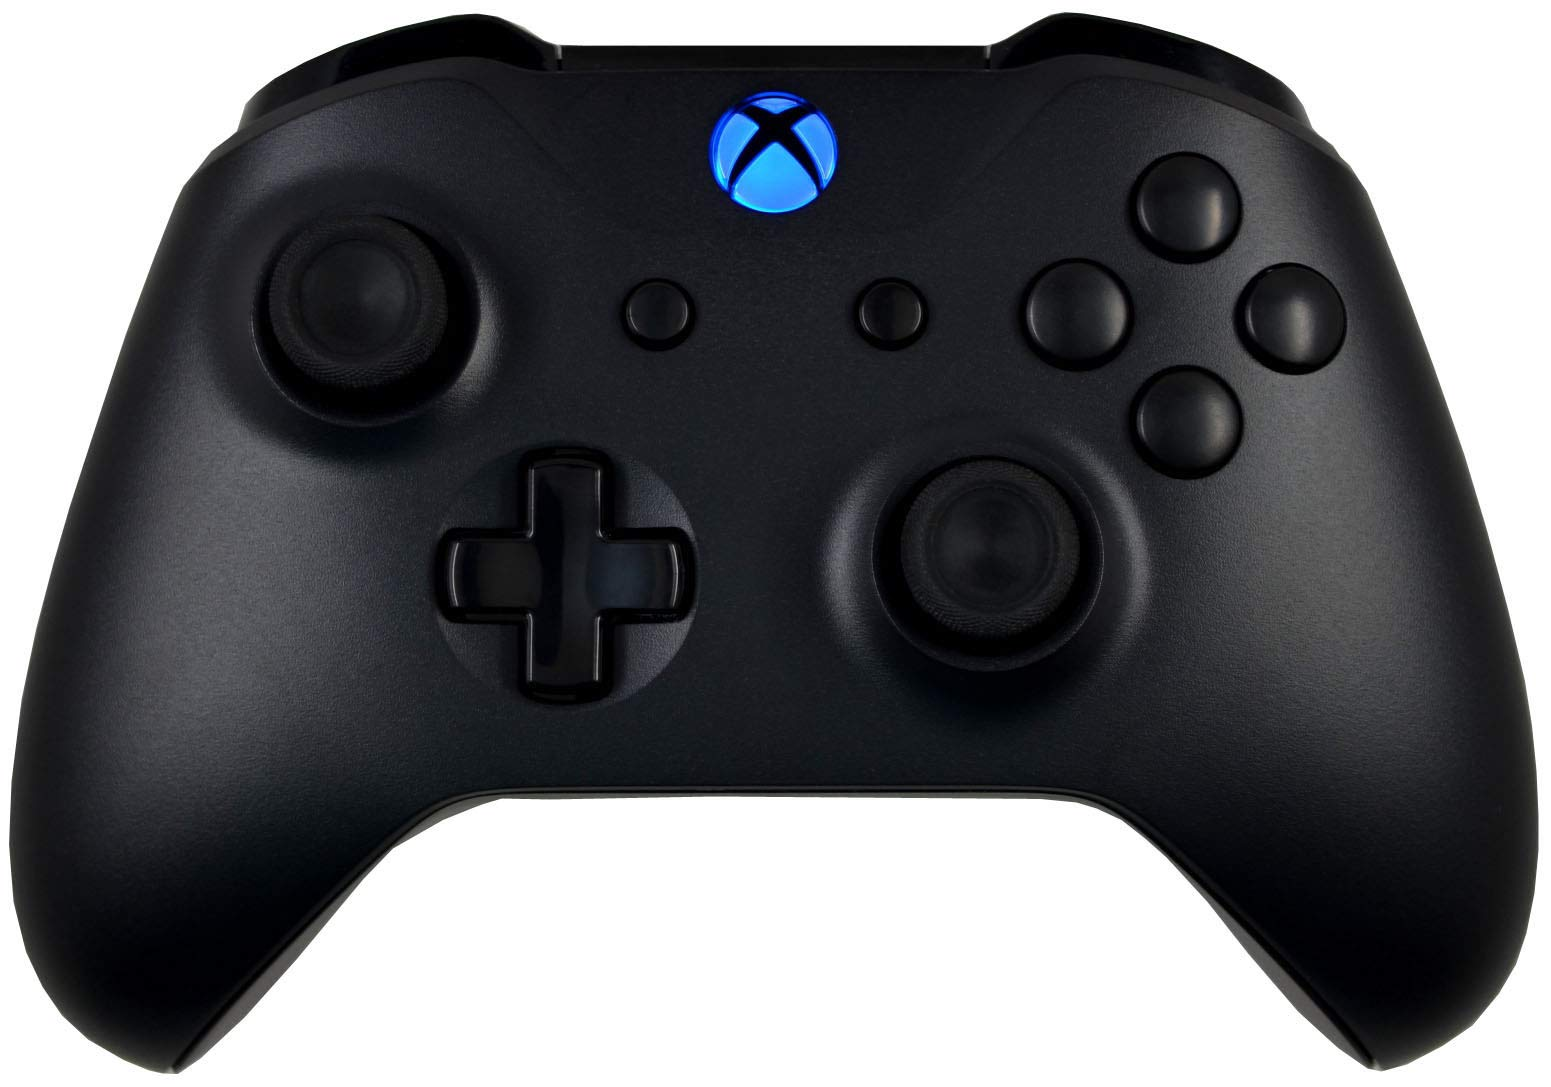 Black Out 5000+ Modded Controller for Microsoft Xbox One - Custom Design that Works on All Shooter Games